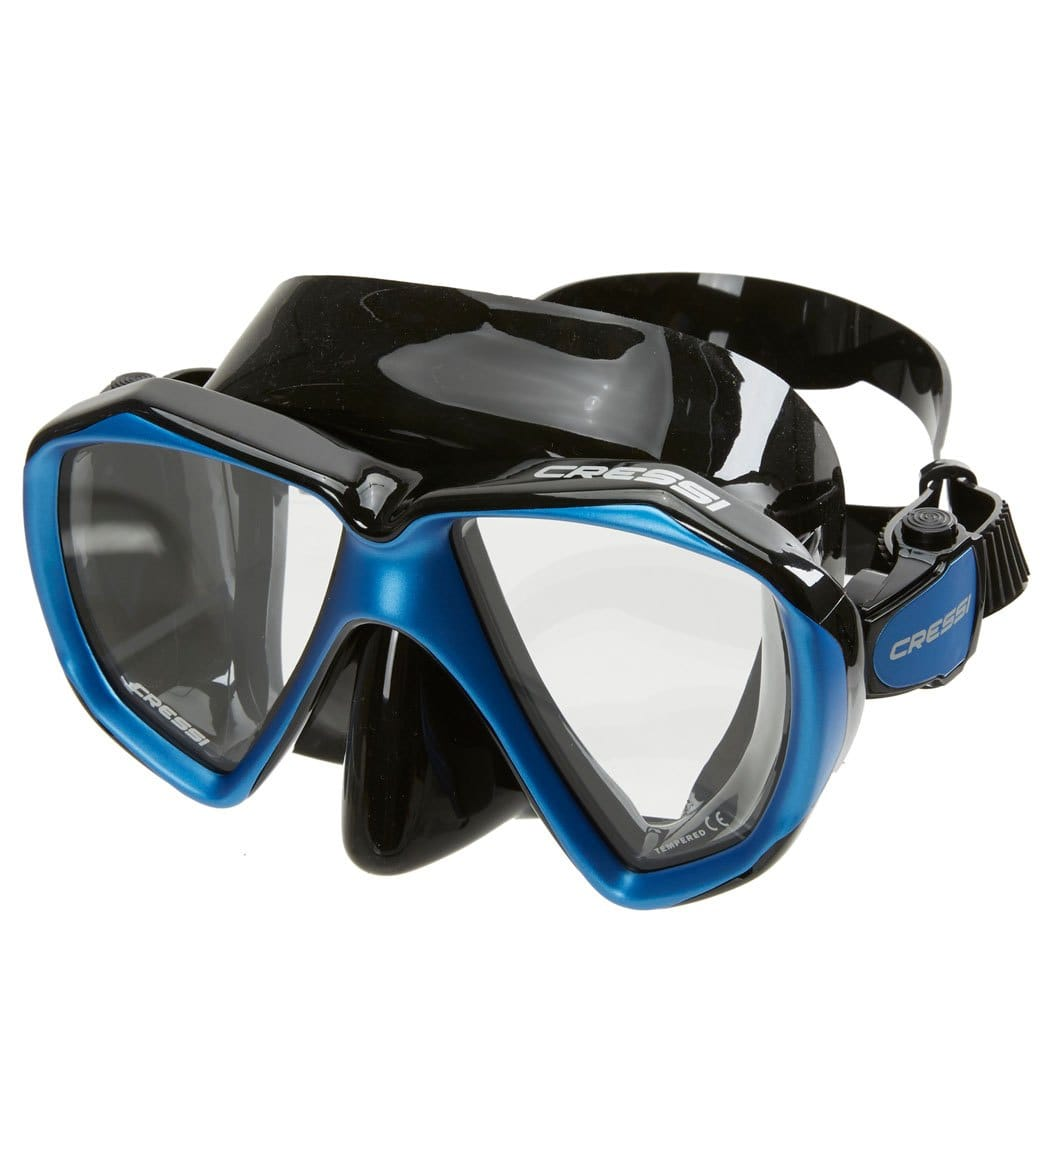 3e8e5ac2d31 Cressi Liberty Duo Scuba Mask at SwimOutlet.com - Free Shipping